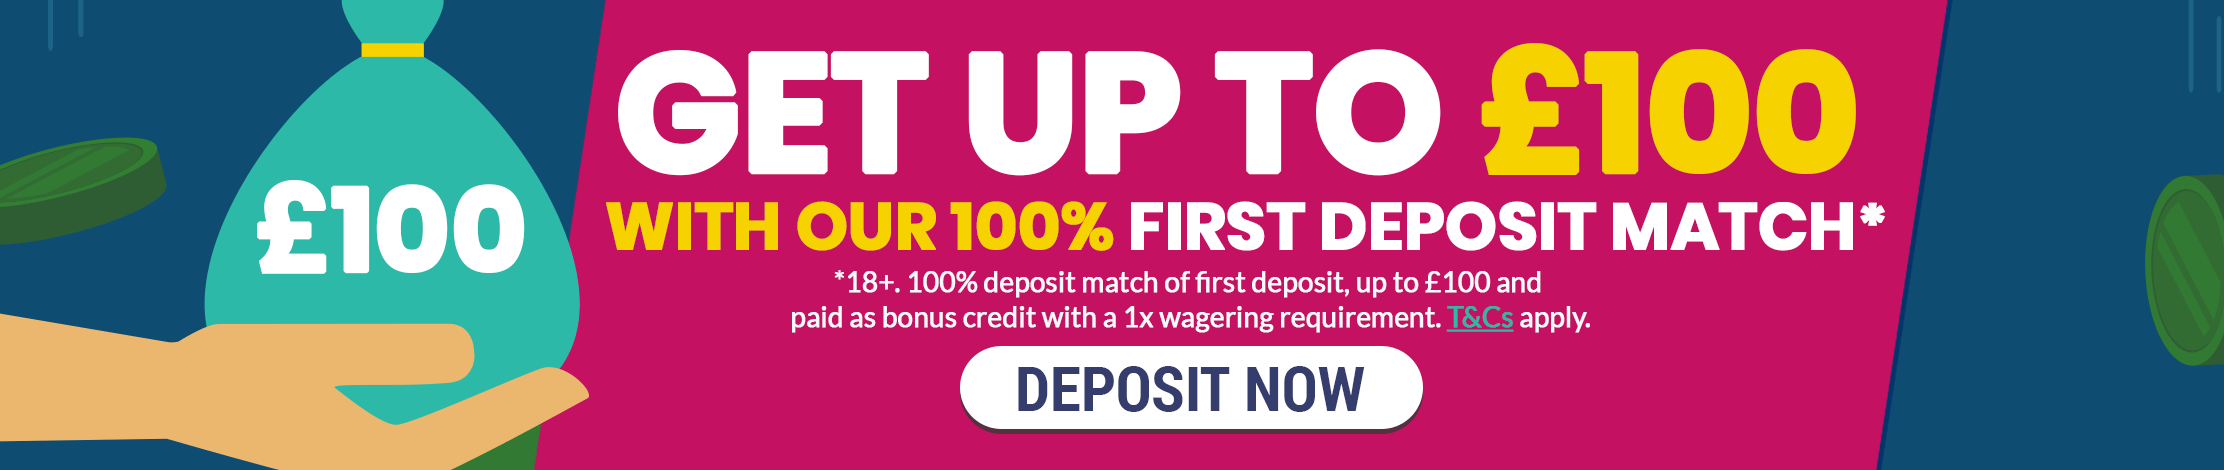 Get up to £100 With your first deposit